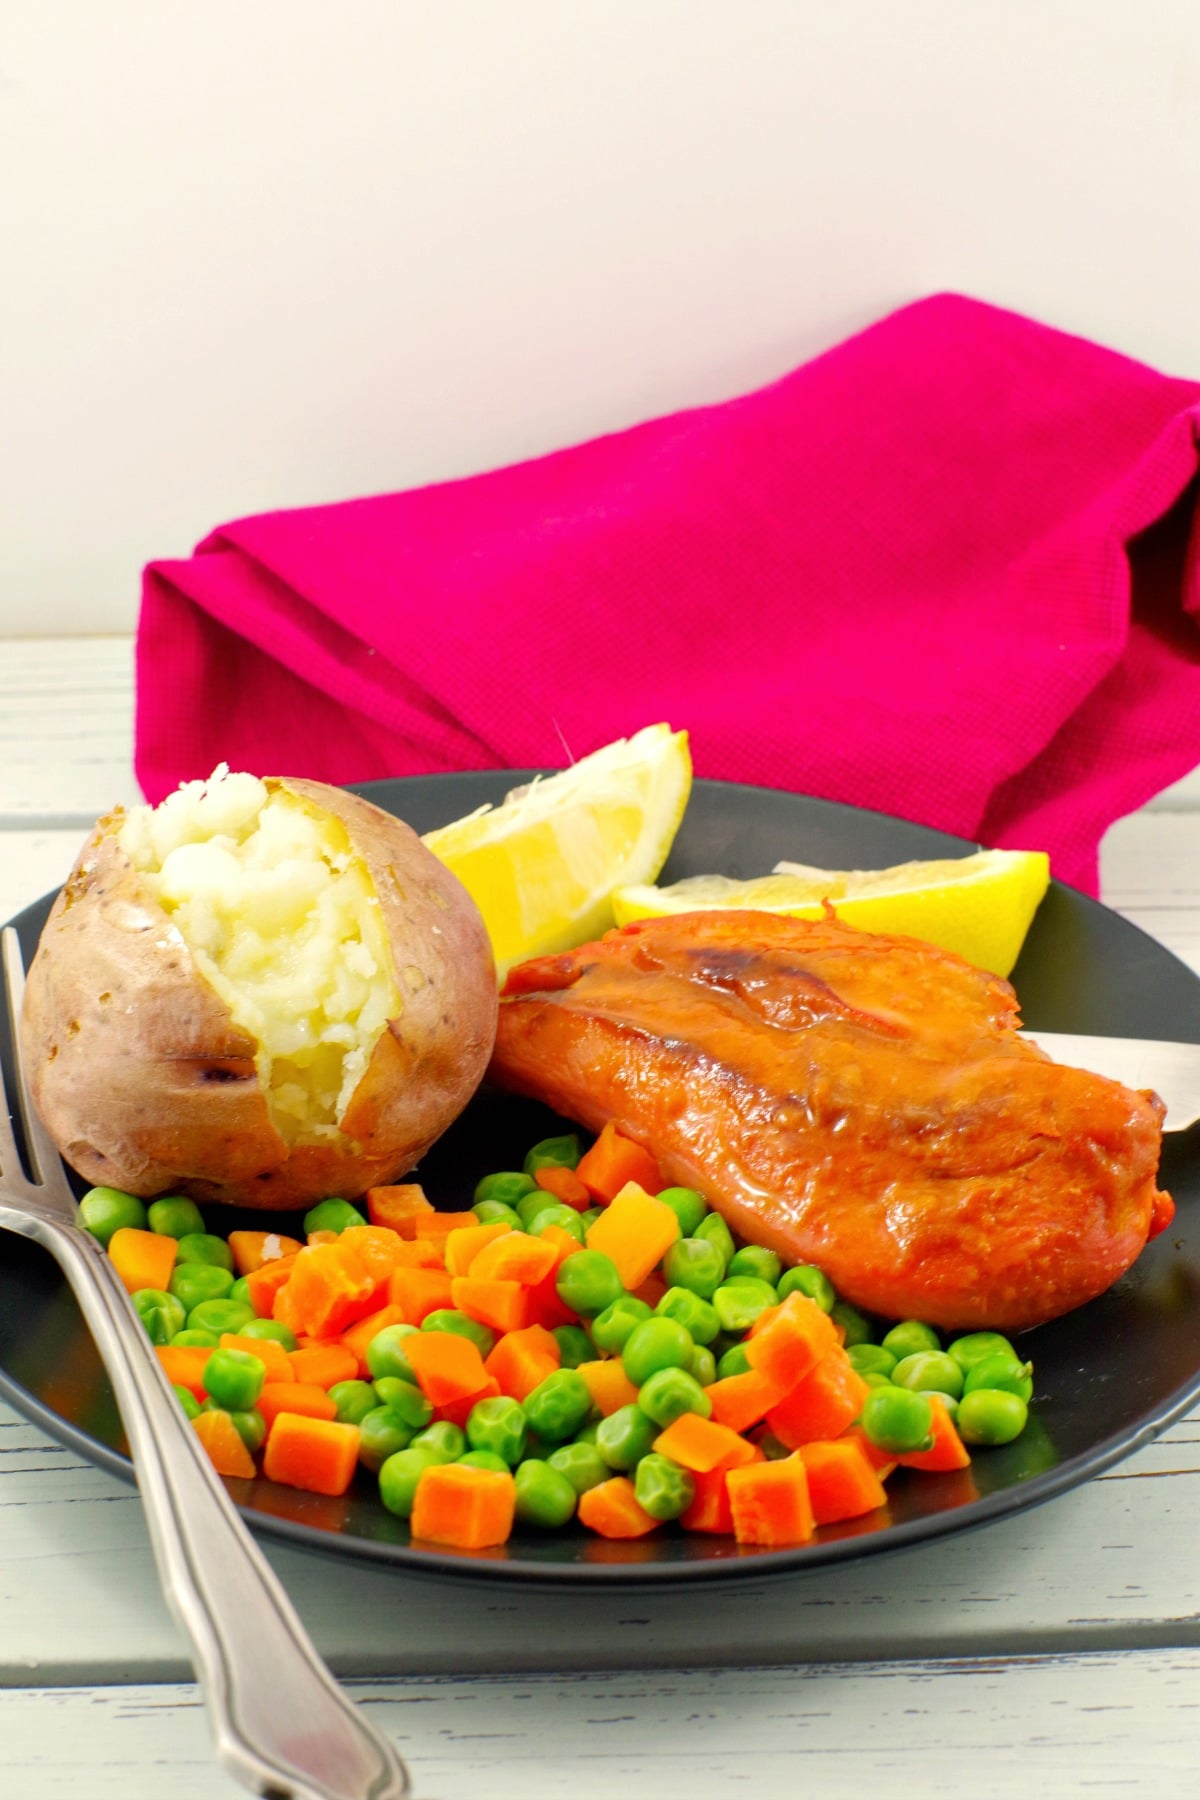 Monterey chicken on plate with baked potato and mixed vegetables